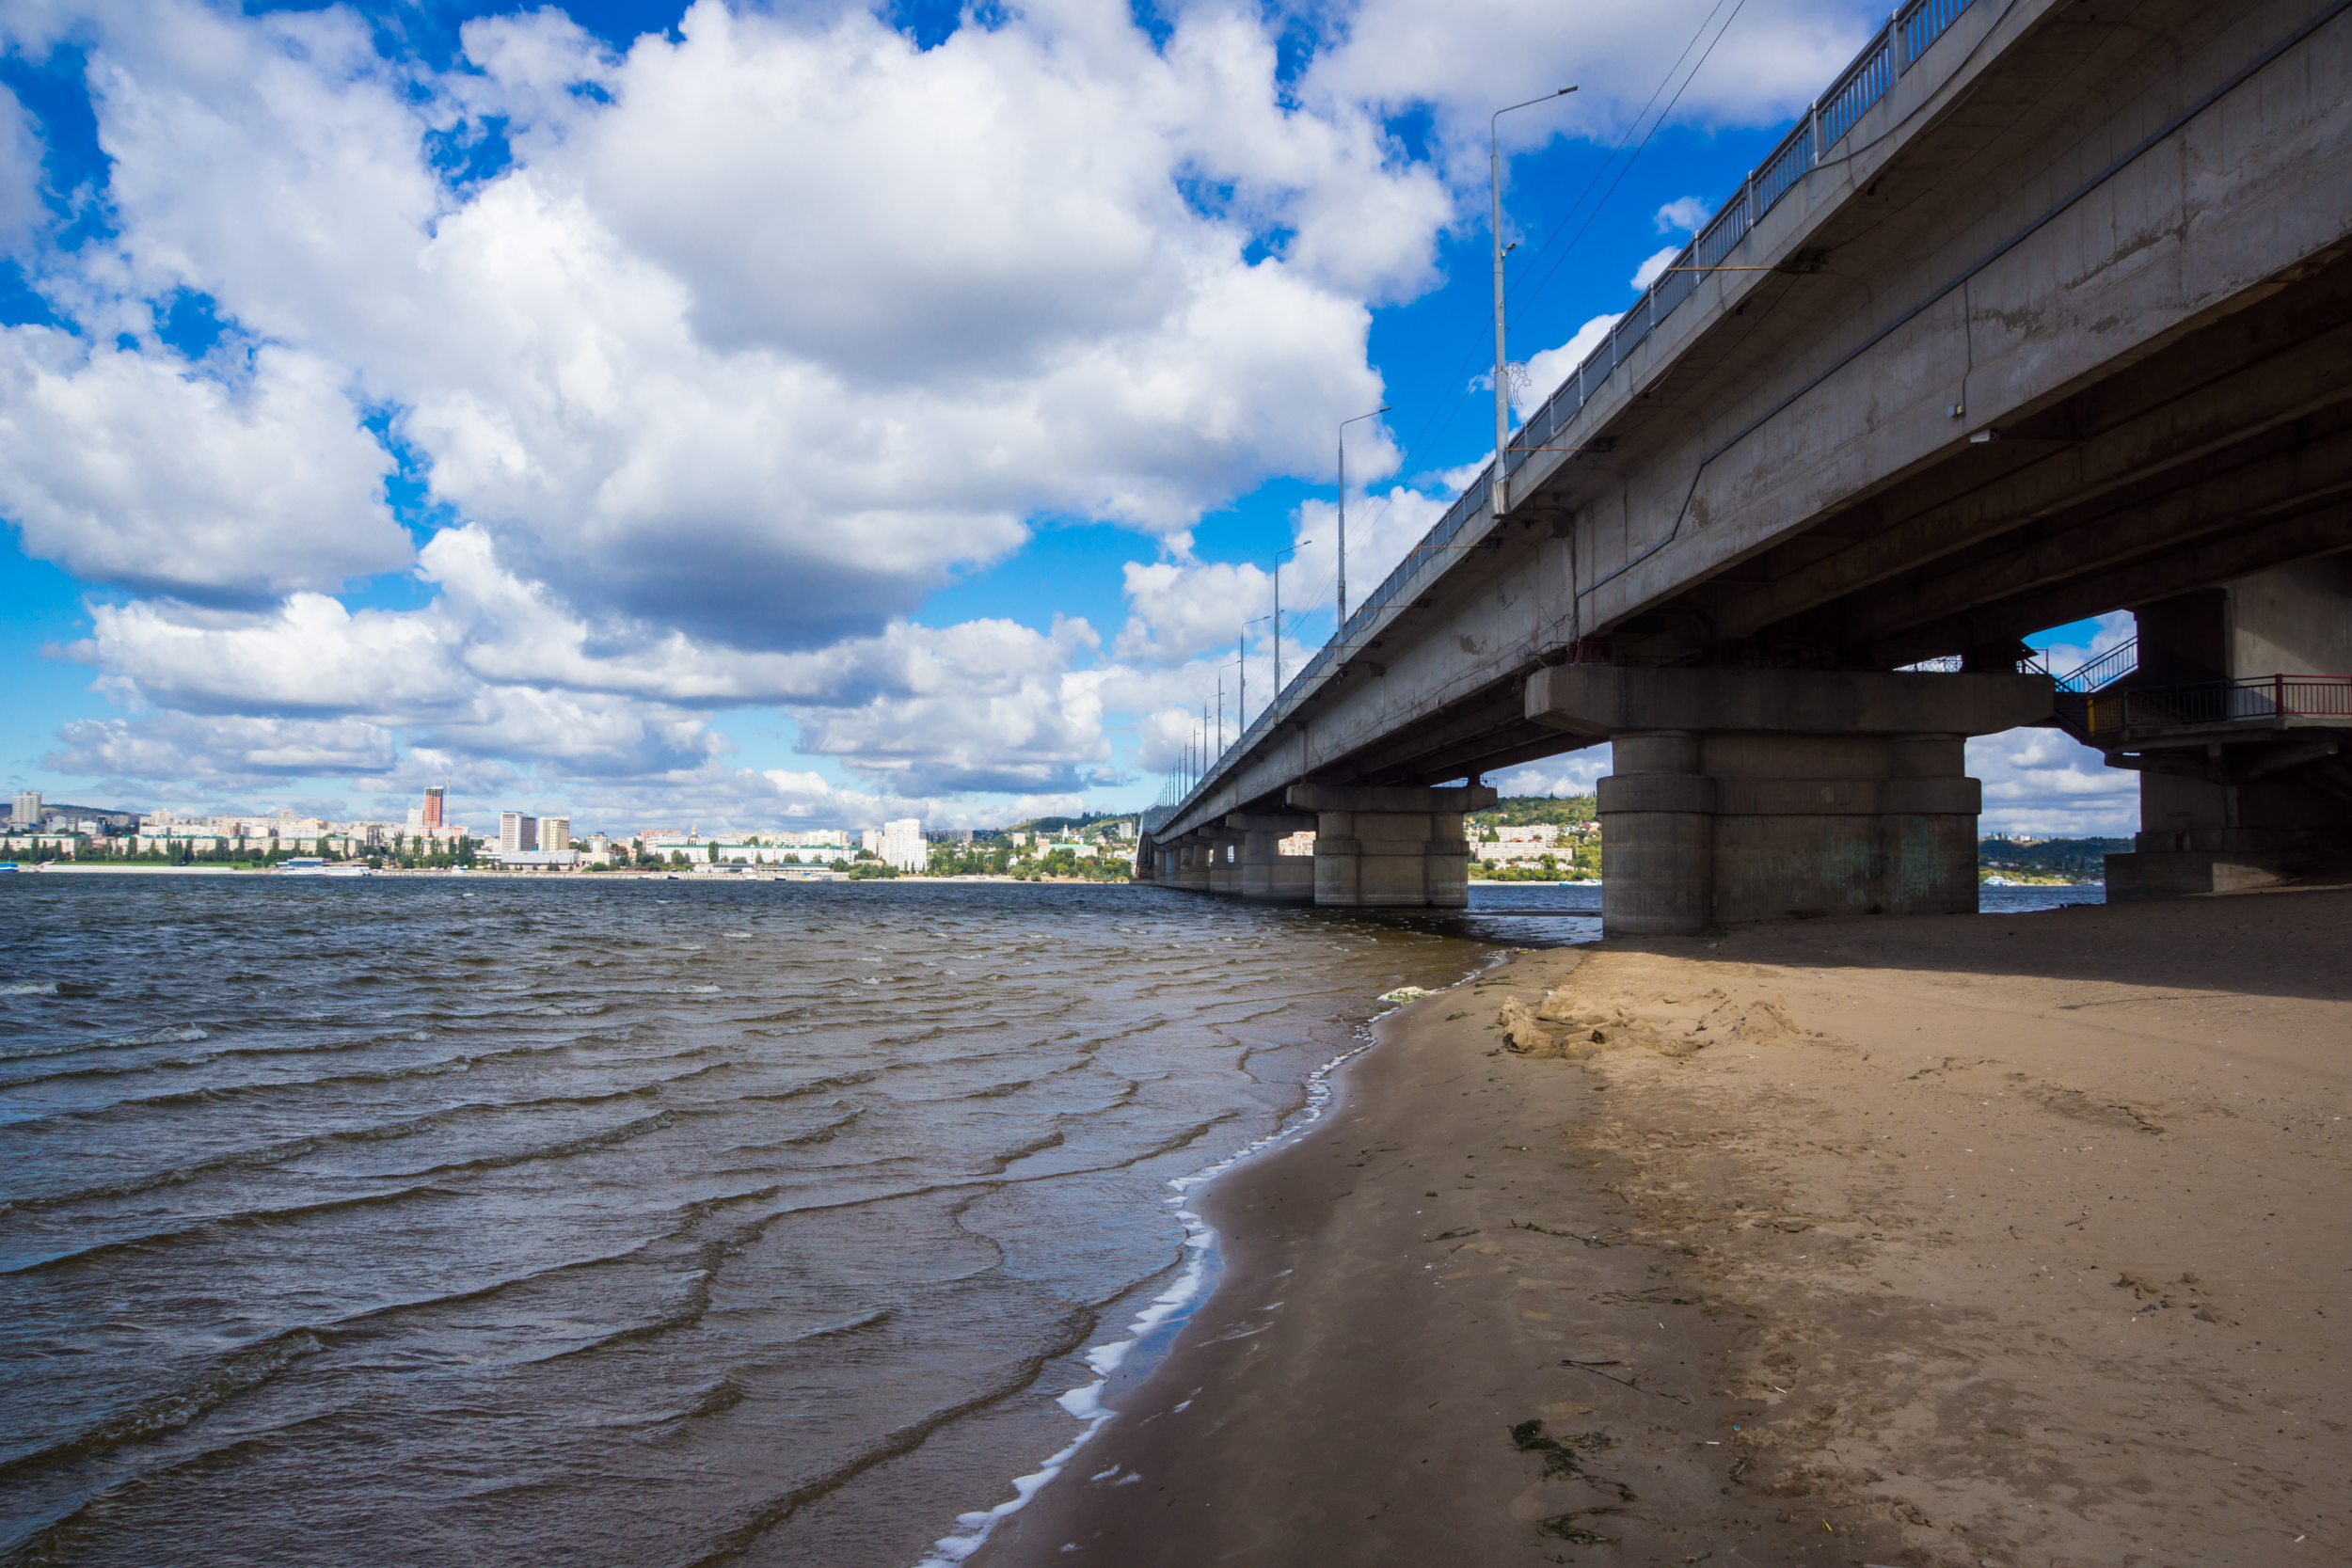 Saratov bridge-view from the beach